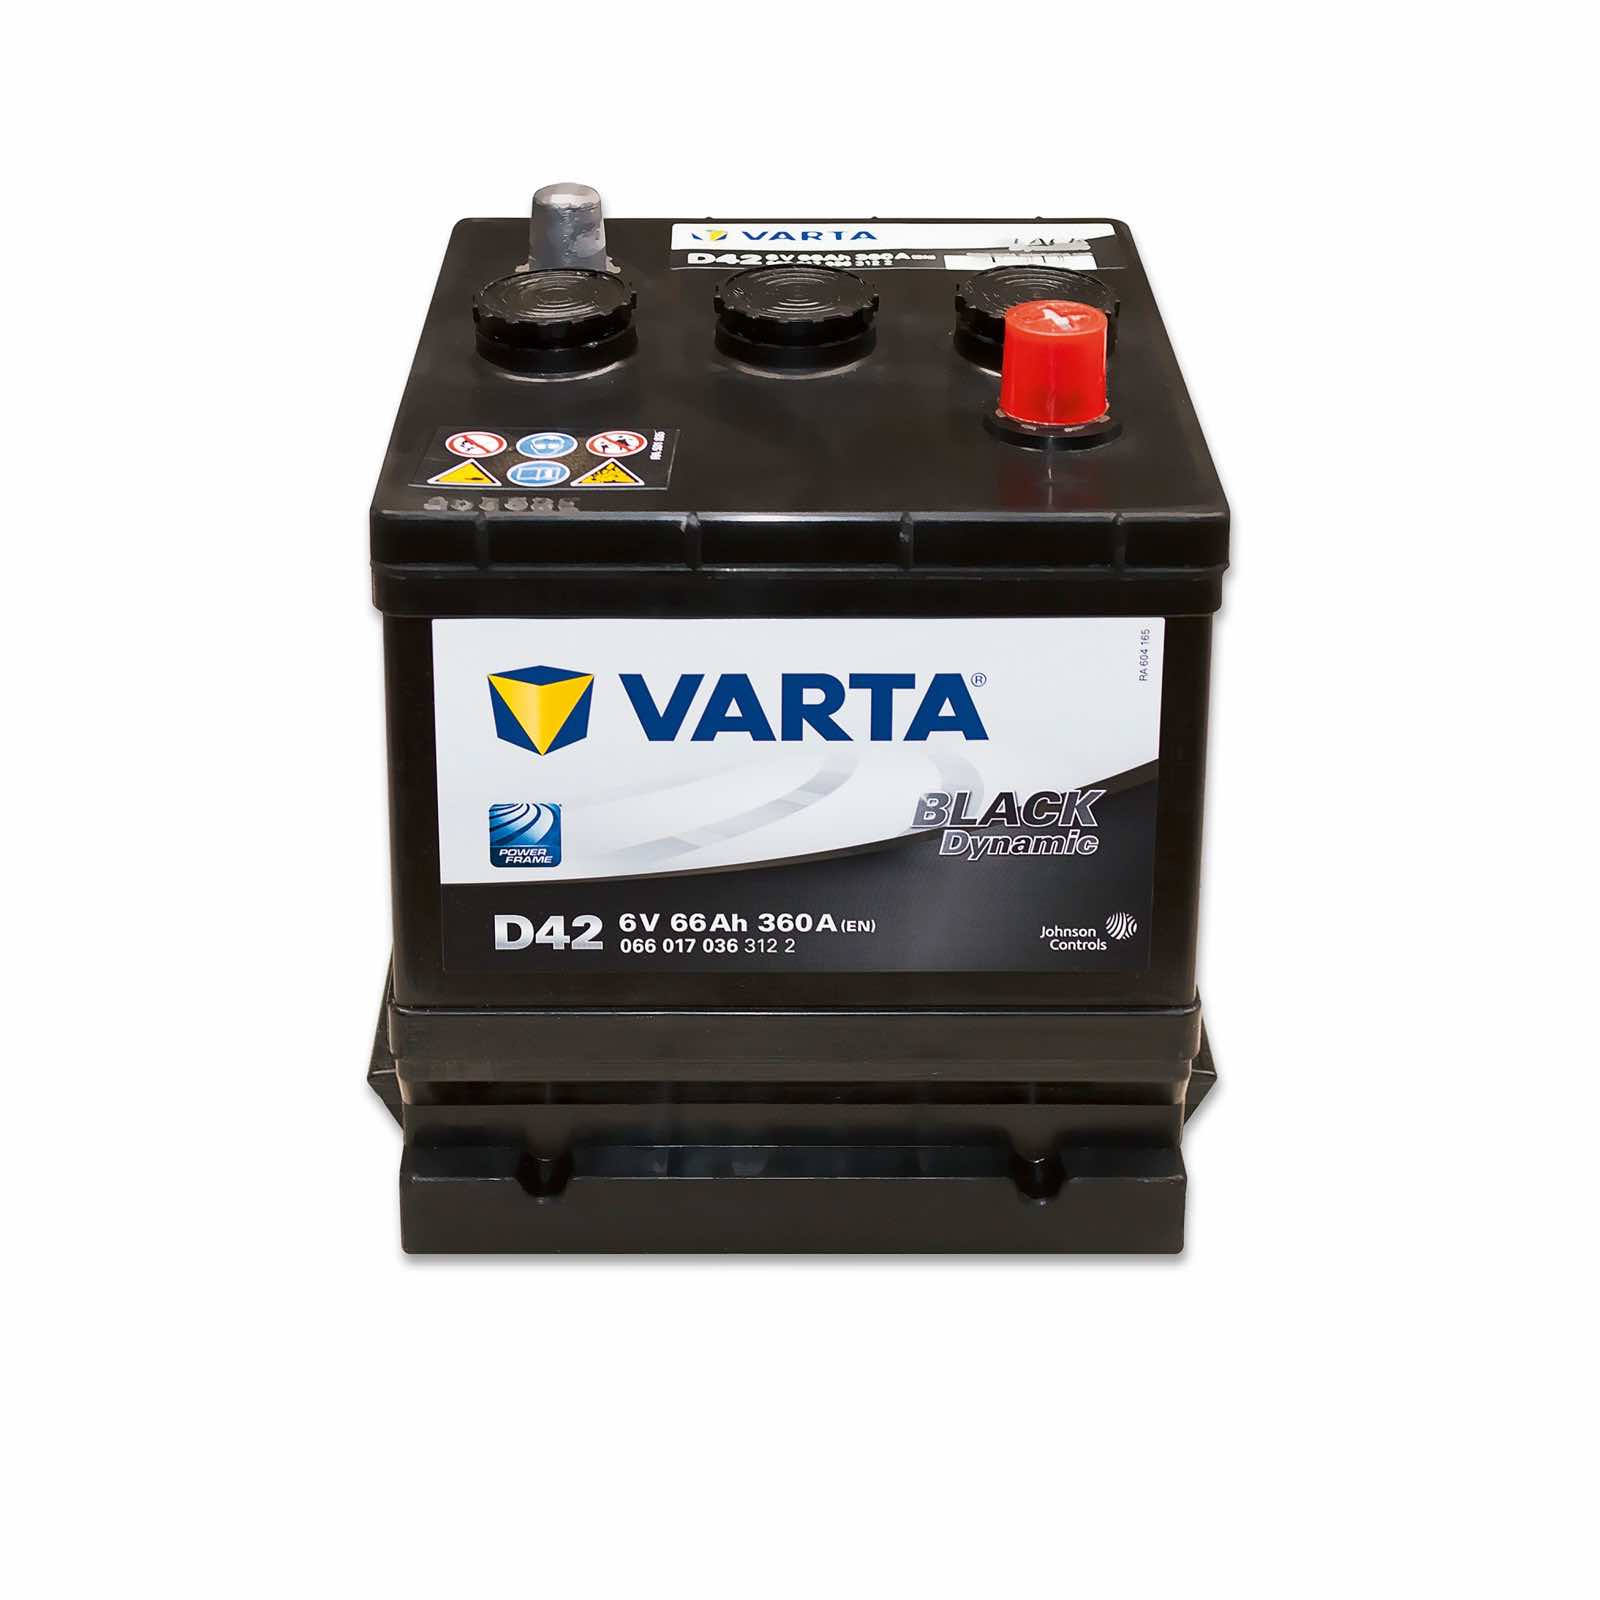 varta d42w black dynamic 6v 66ah online battery. Black Bedroom Furniture Sets. Home Design Ideas